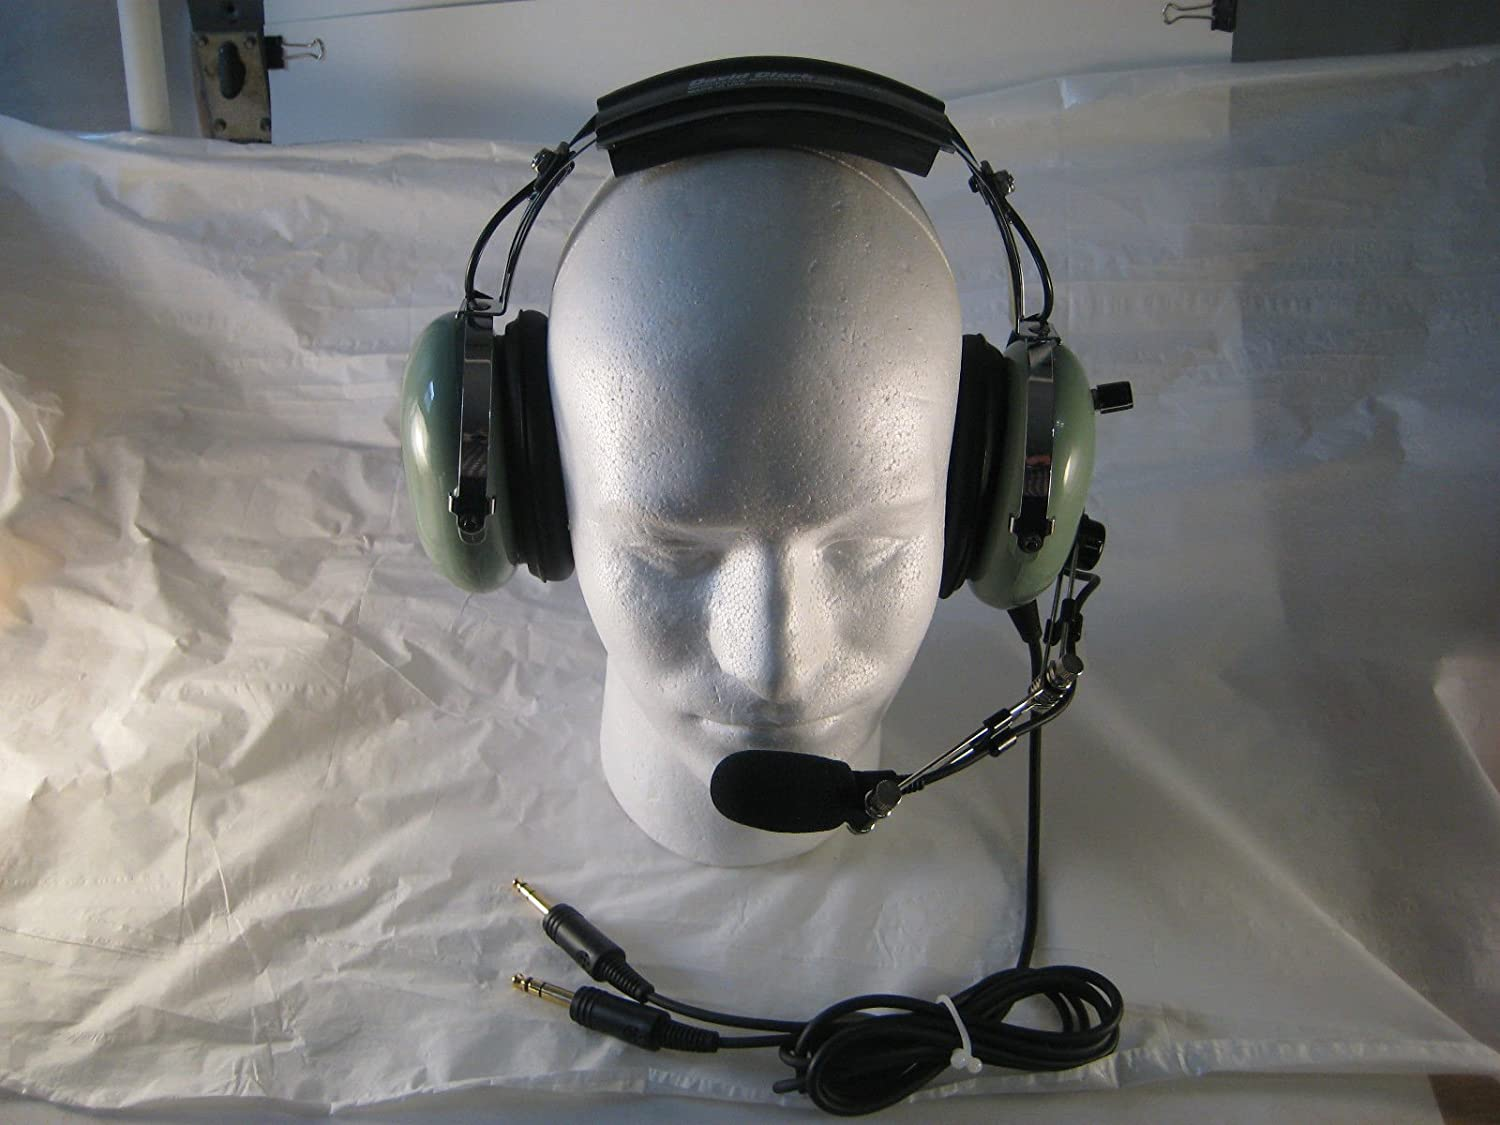 Amazon.com: David Clark Remanufactured General Aviation Headset GAR76 with  Volume Control: GPS & Navigation